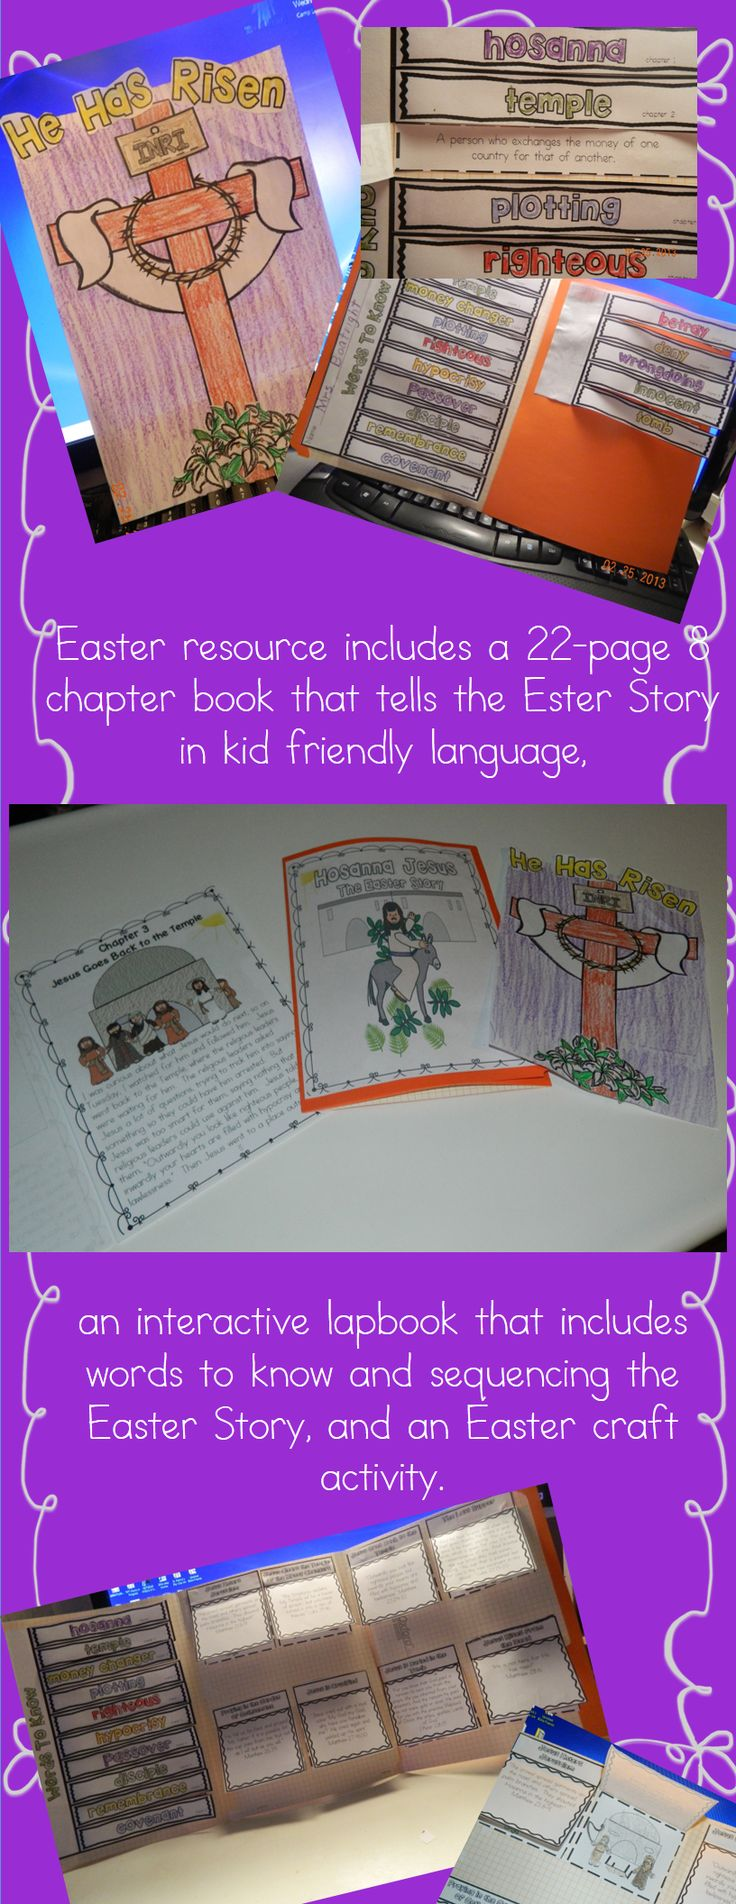 A great Christian teaching resource that tells the Easter Story in a kid friendly 22 page 9 chapter book. Print it out or read it straight from your SMARTBoard. The follow-up activities include an interactive lapbook and a craft activity. $ #Easter